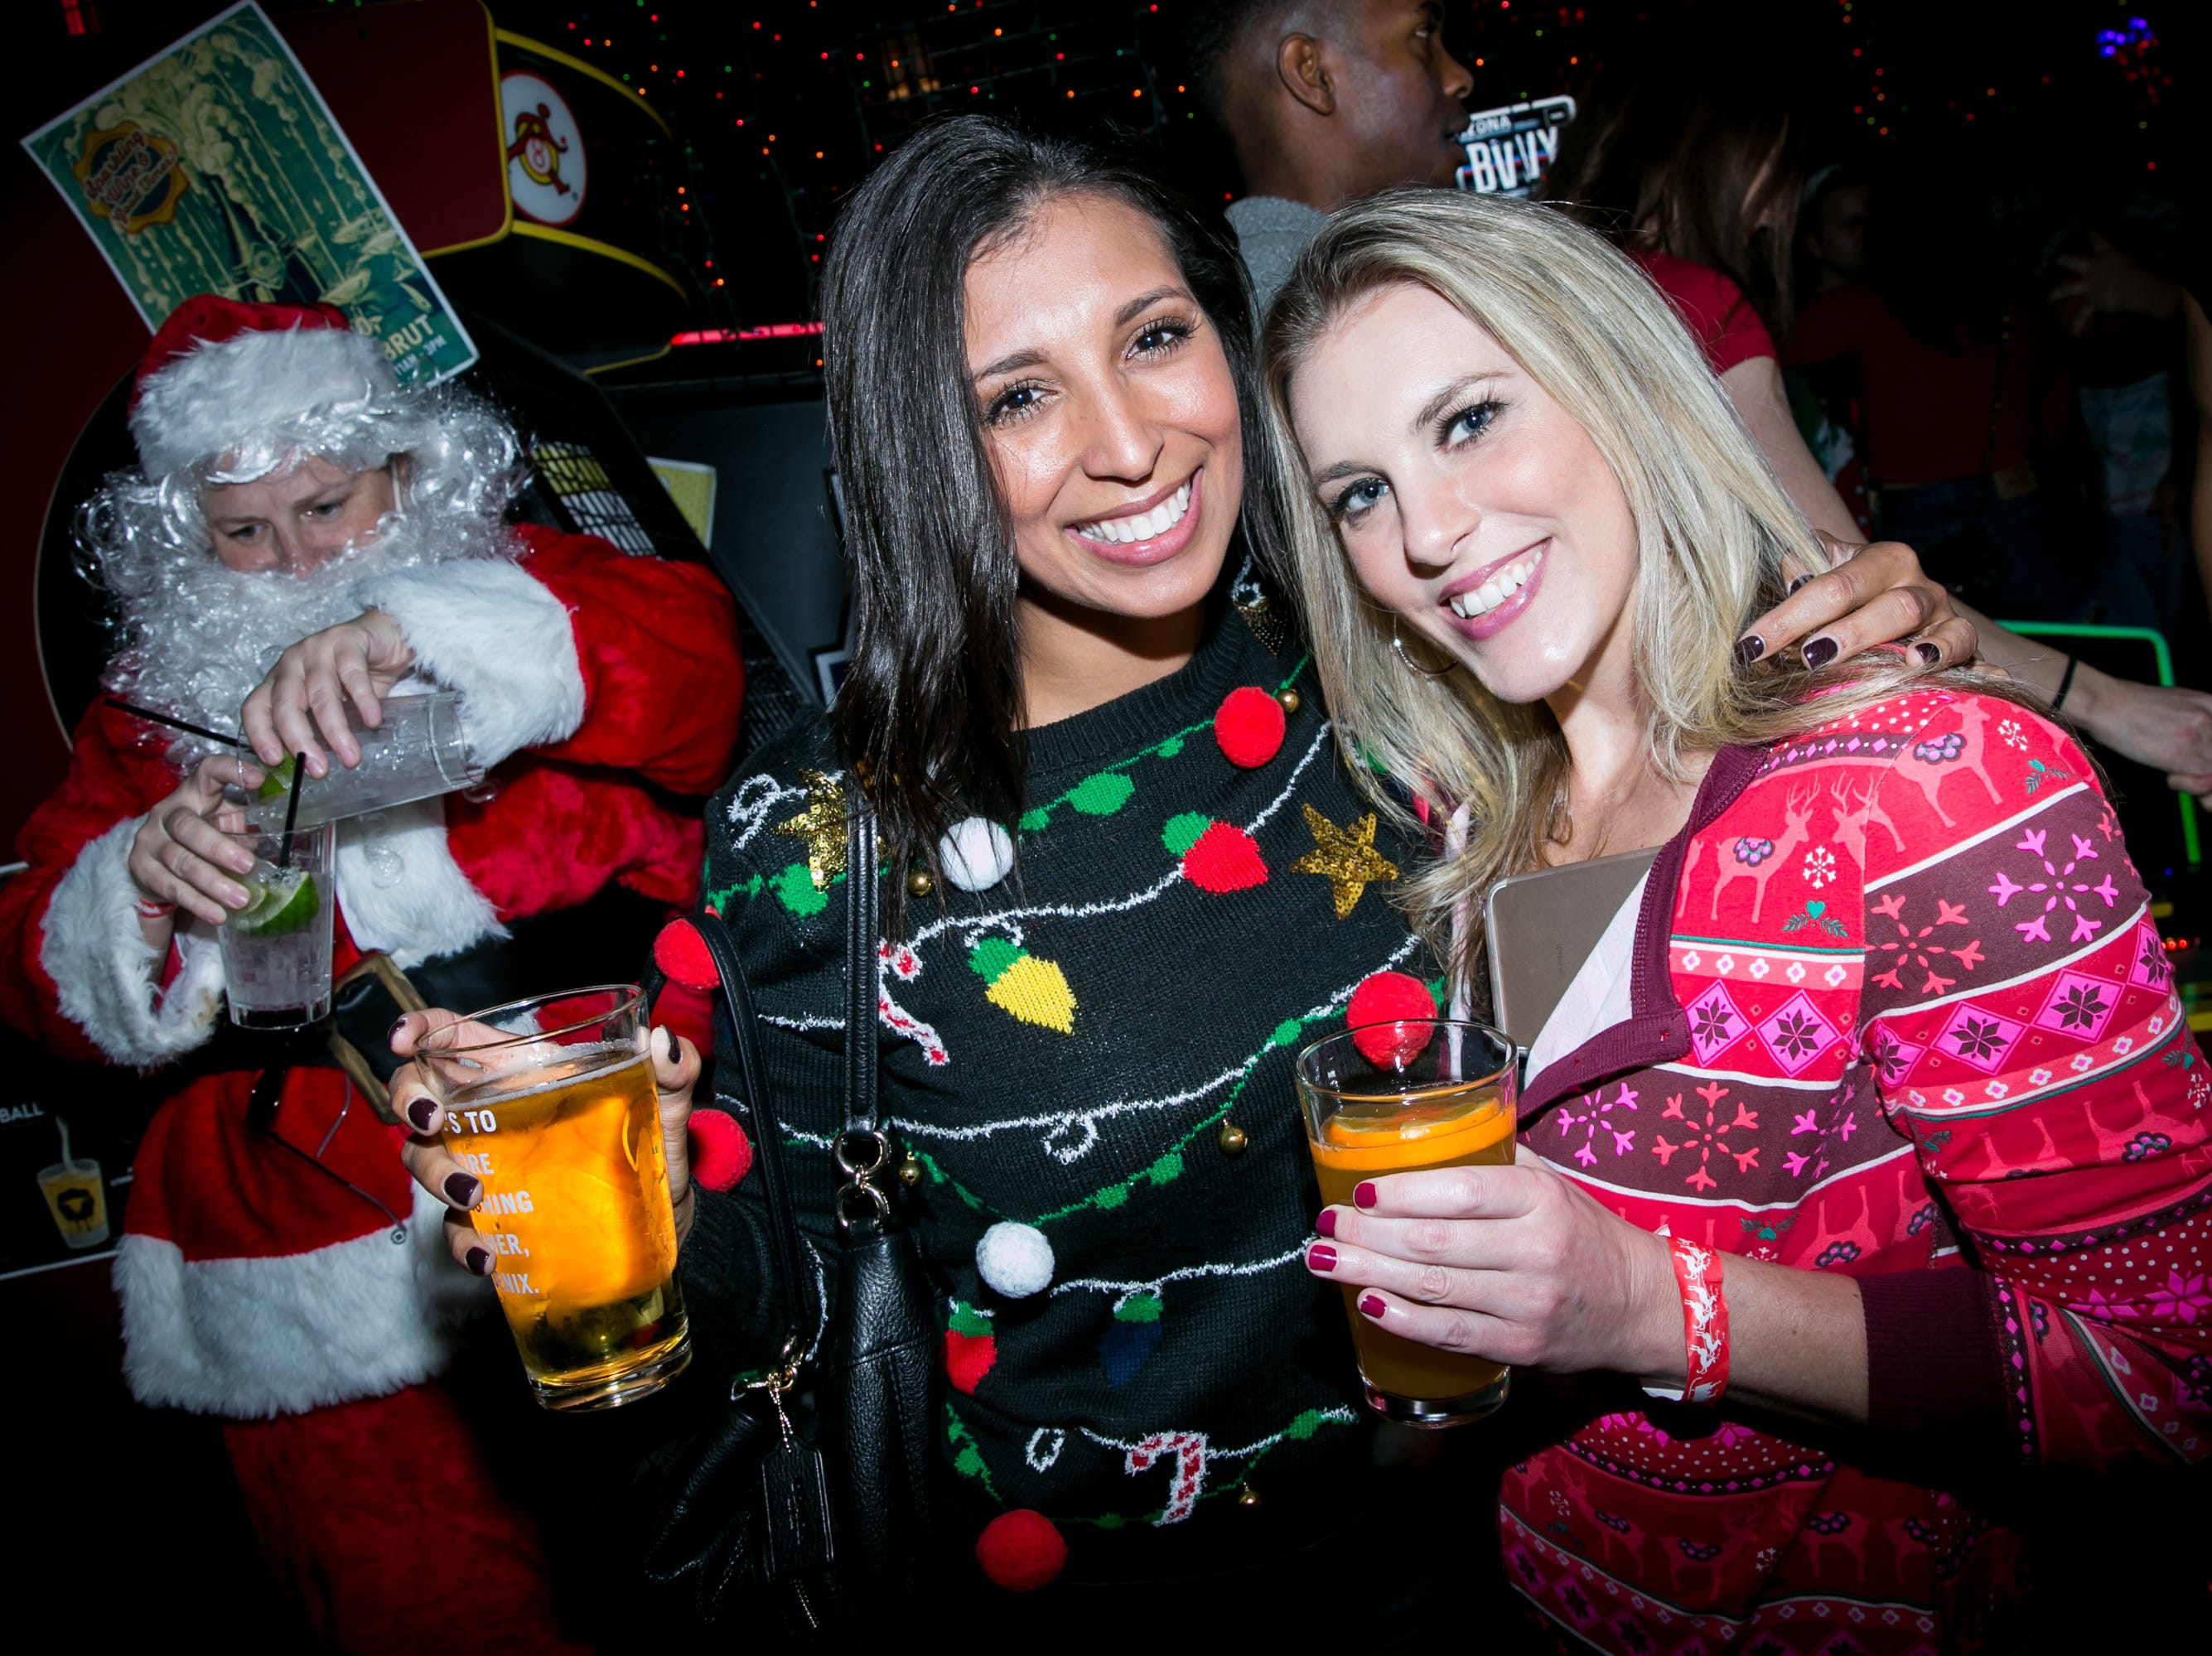 Santa made an apperance at The Bevvy during the Scottsdale Santa Crawl on Saturday, December 8, 2018.